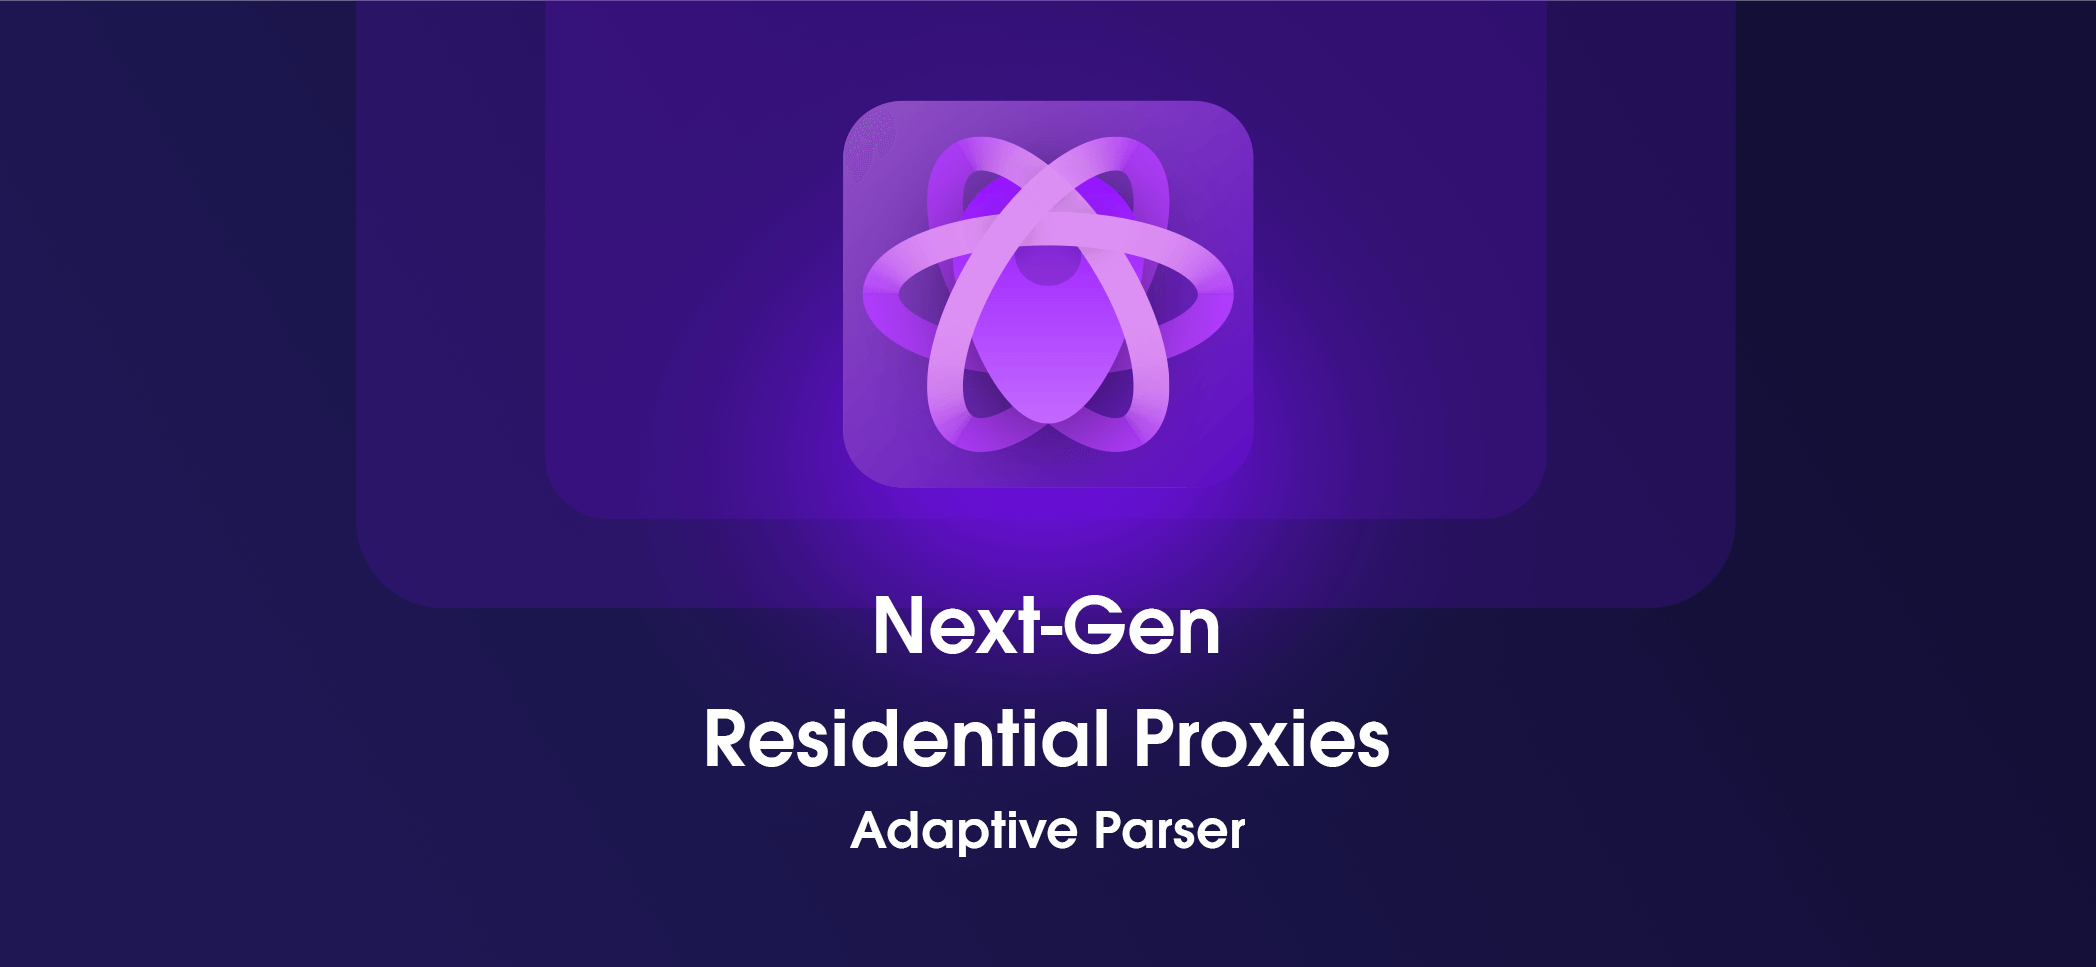 New Feature for Next-Gen Residential Proxies: Adaptive Parser